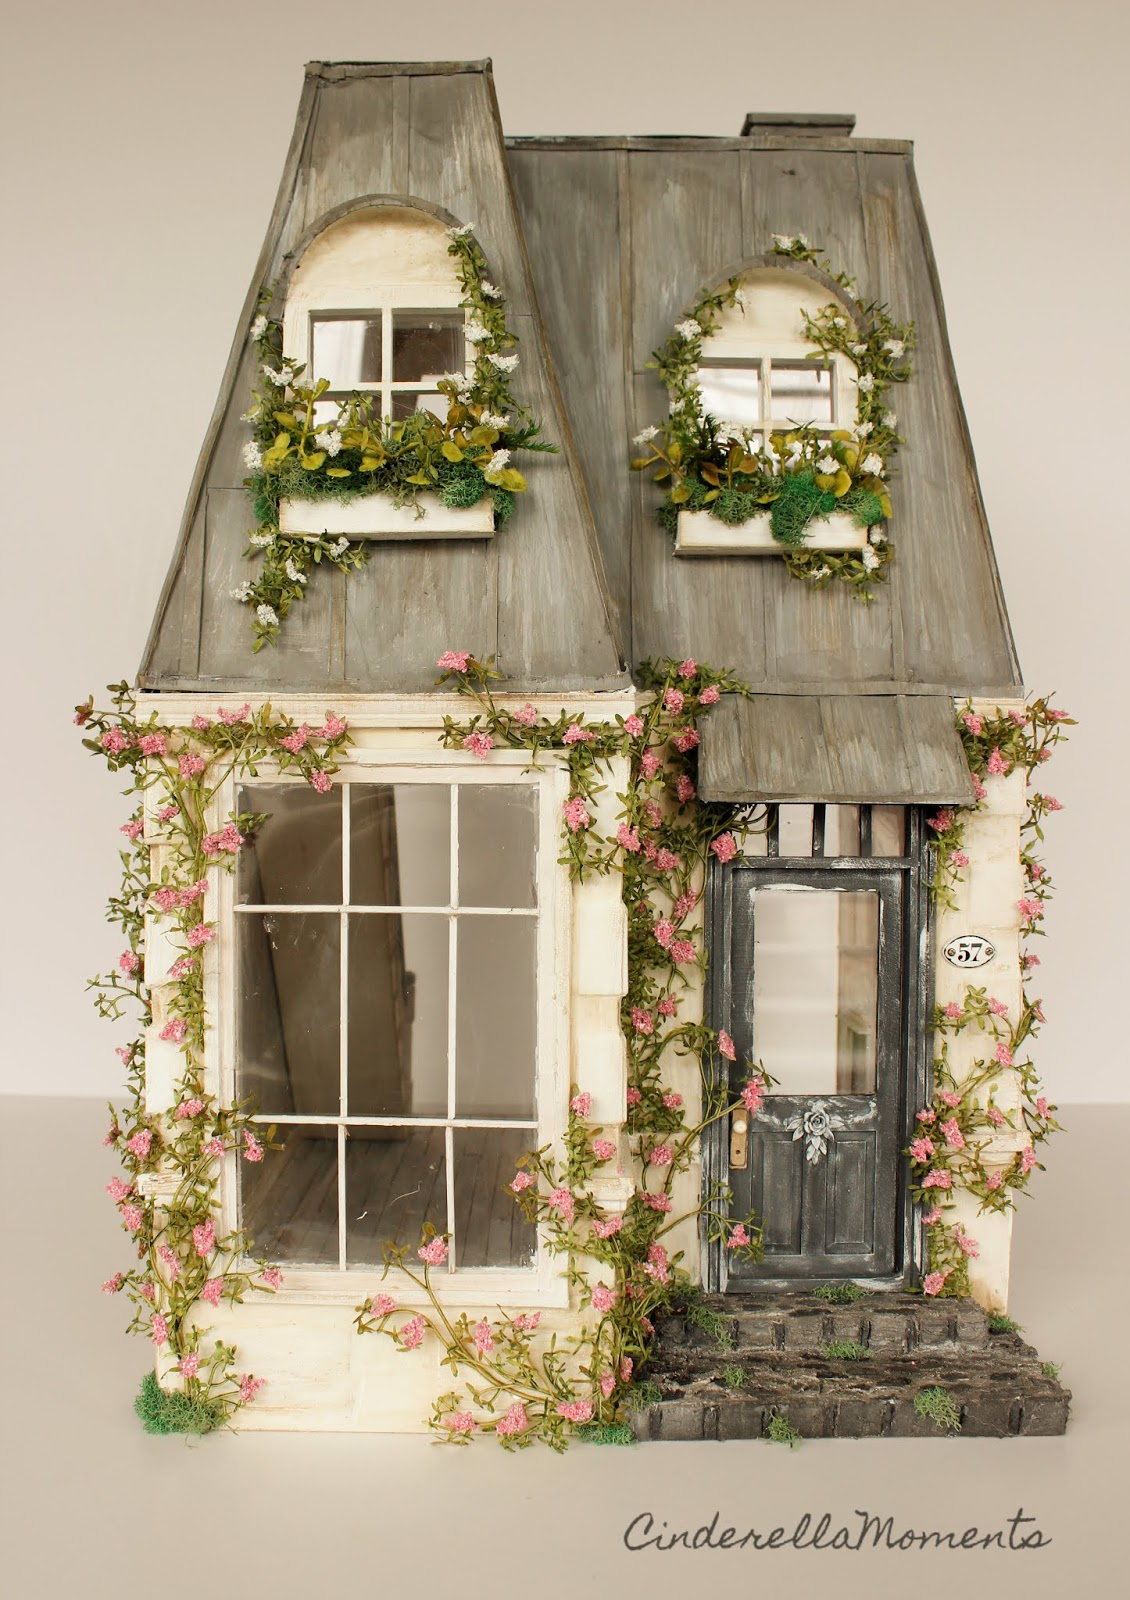 Cinderella Moments: Swan Lake House Custom Dollhouse on